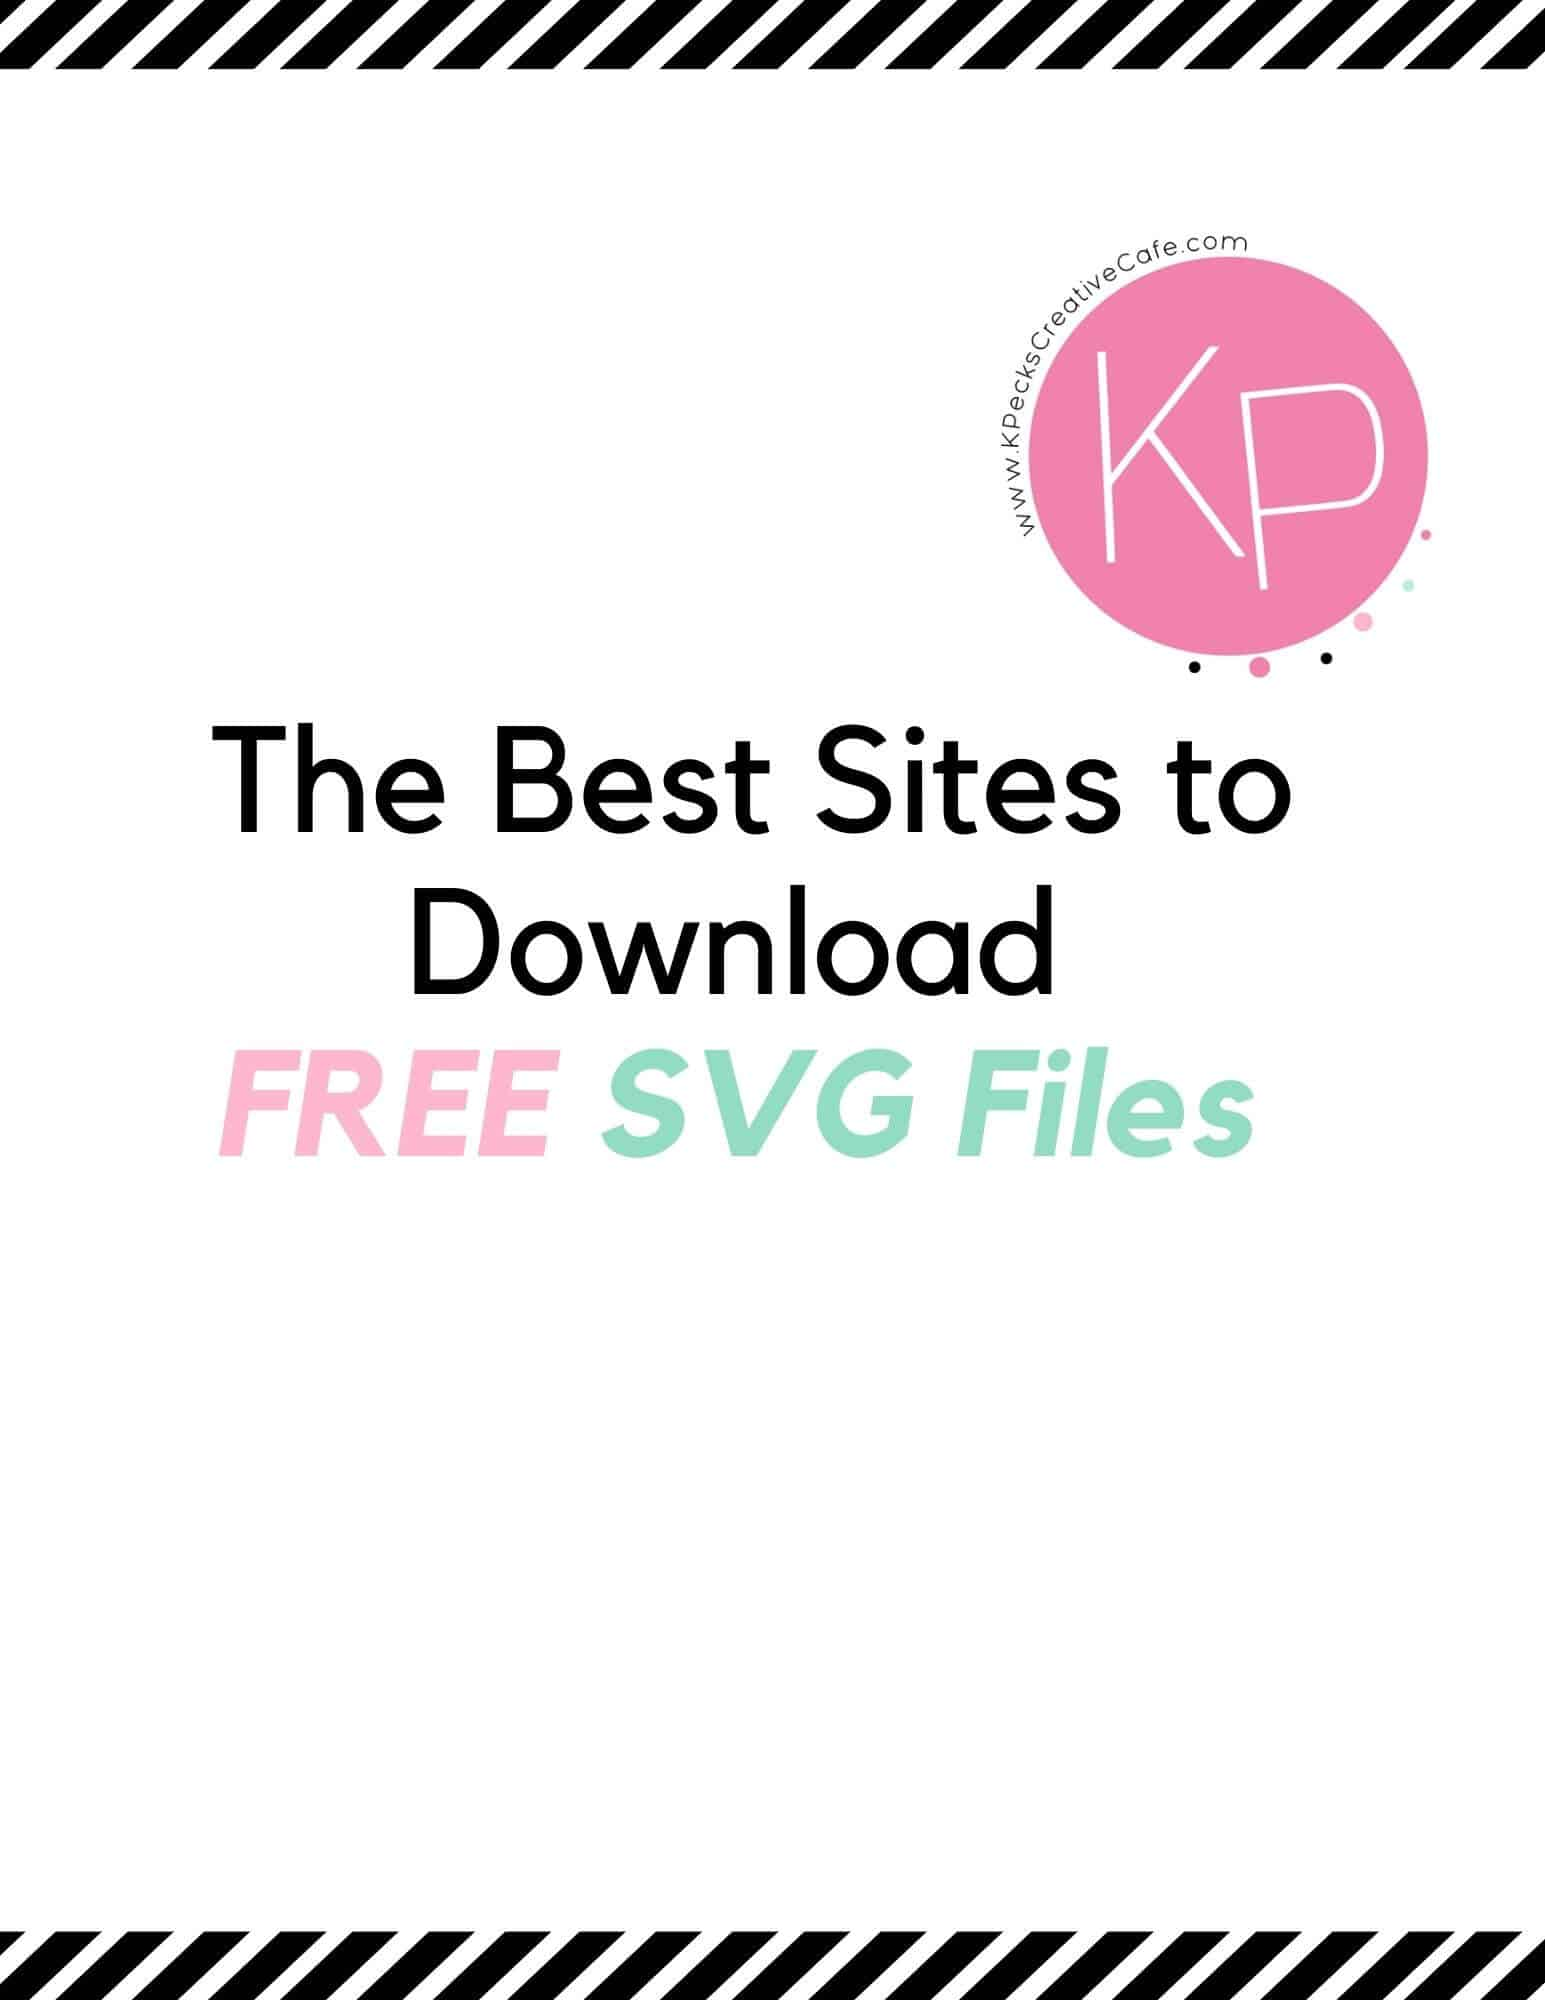 The Best Sites to Download FREE SVG Files